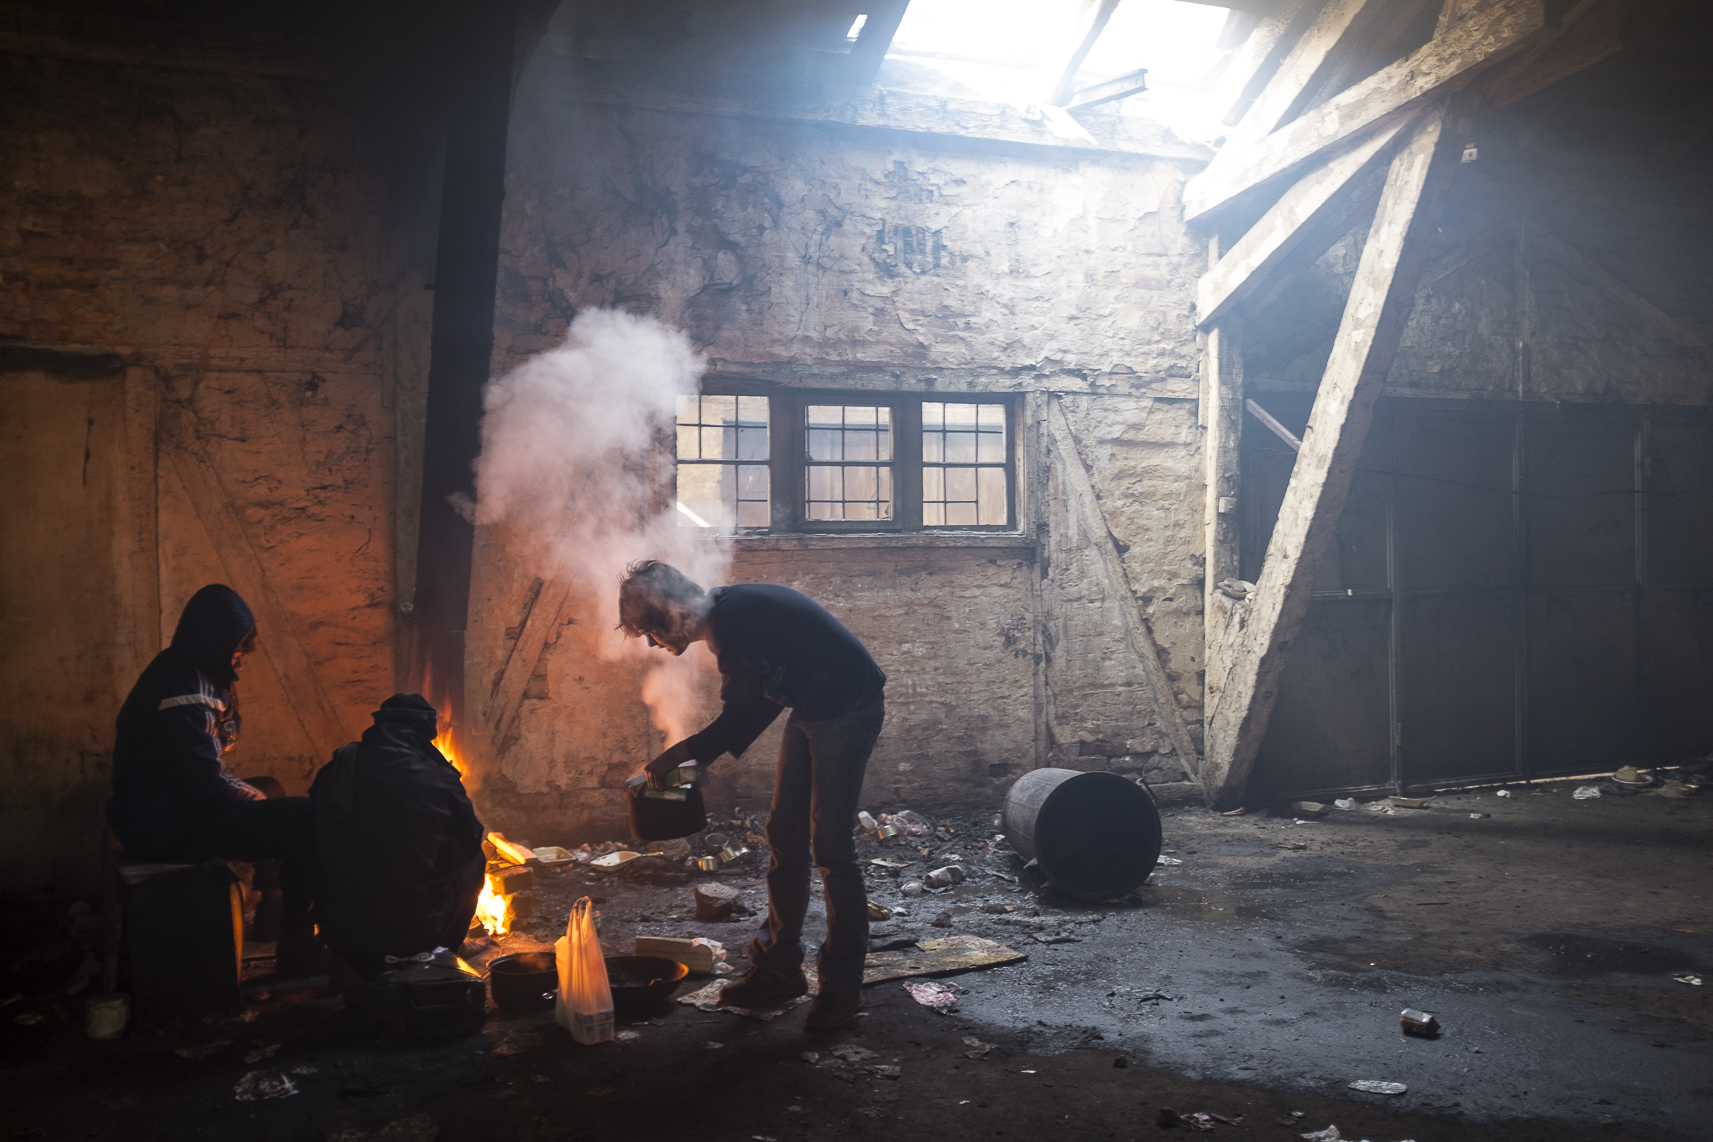 Migrants cook lunch on a fire inside an abandoned warehouse where they took shelter in Belgrade, Serbia. February 15, 2107.